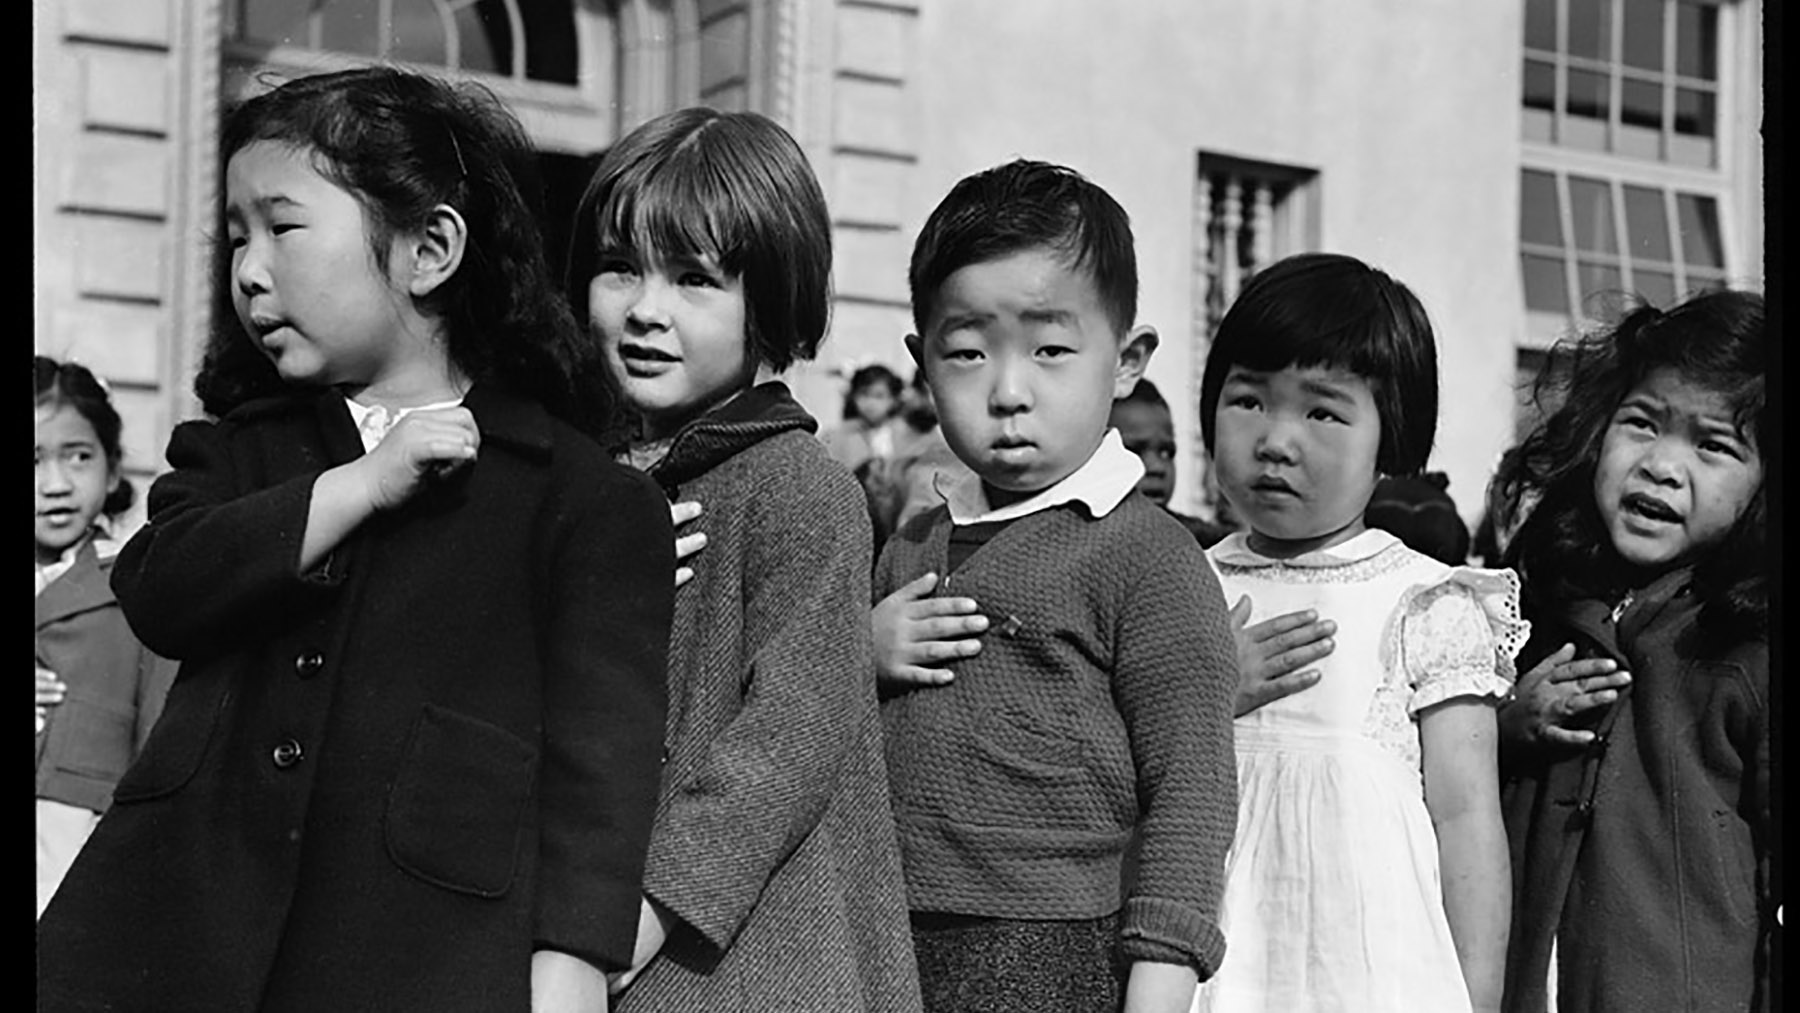 Japanese-American children reciting the Pledge of Allegiance. Photo by Dorthea Lange